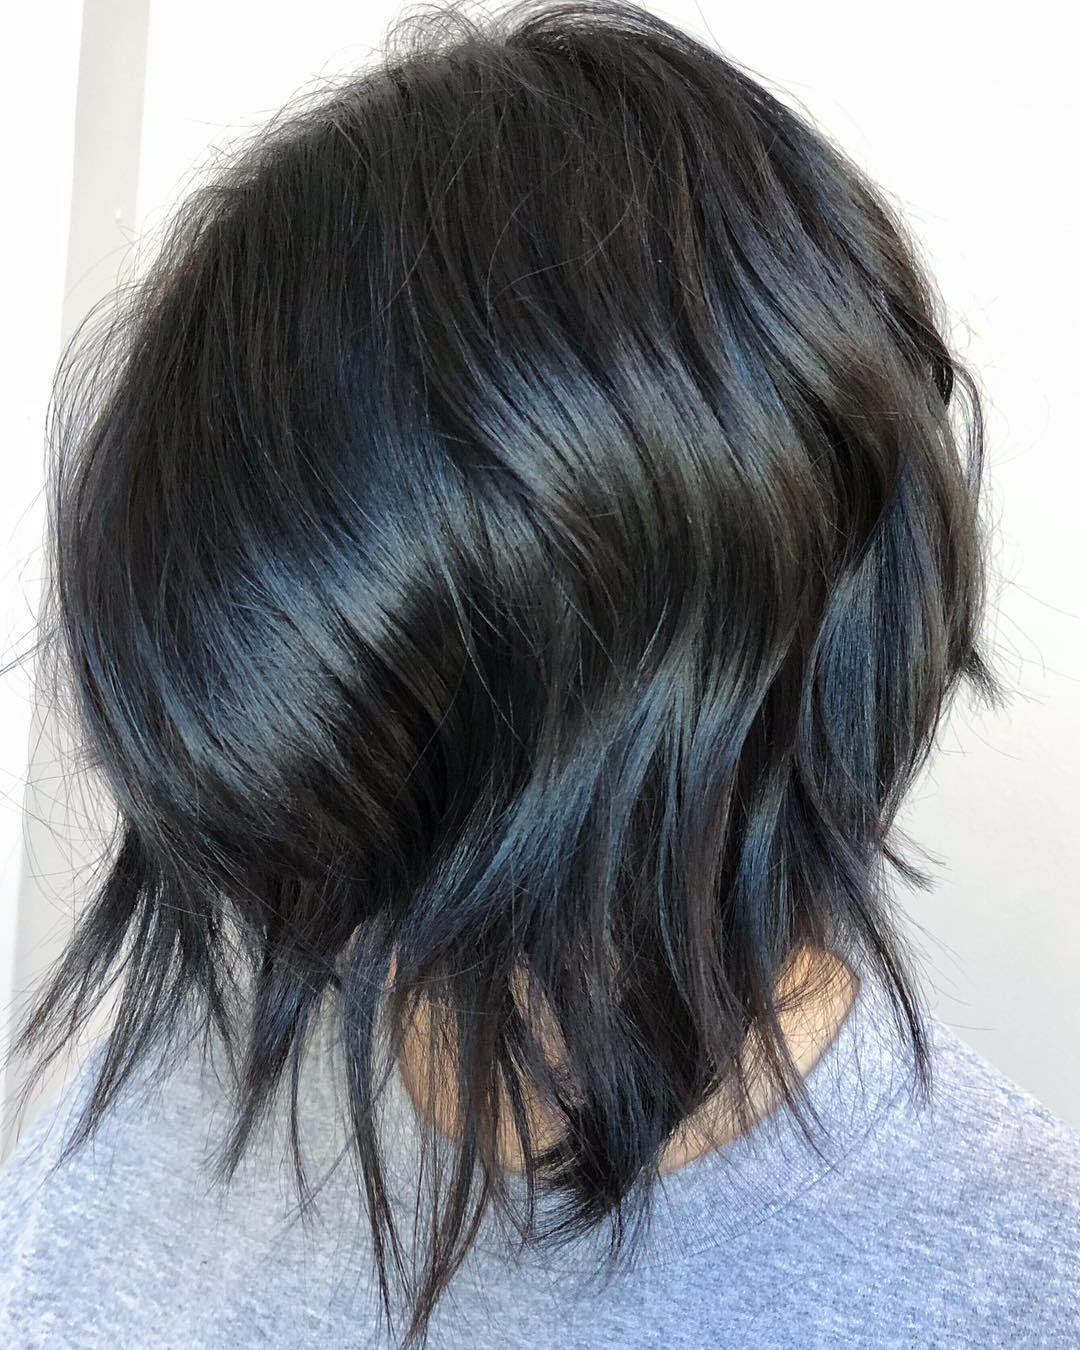 50 Most Flattering Hairstyles For Thick Hair – Hair Adviser Within Long Razored Shag Haircuts With Balayage (View 10 of 20)